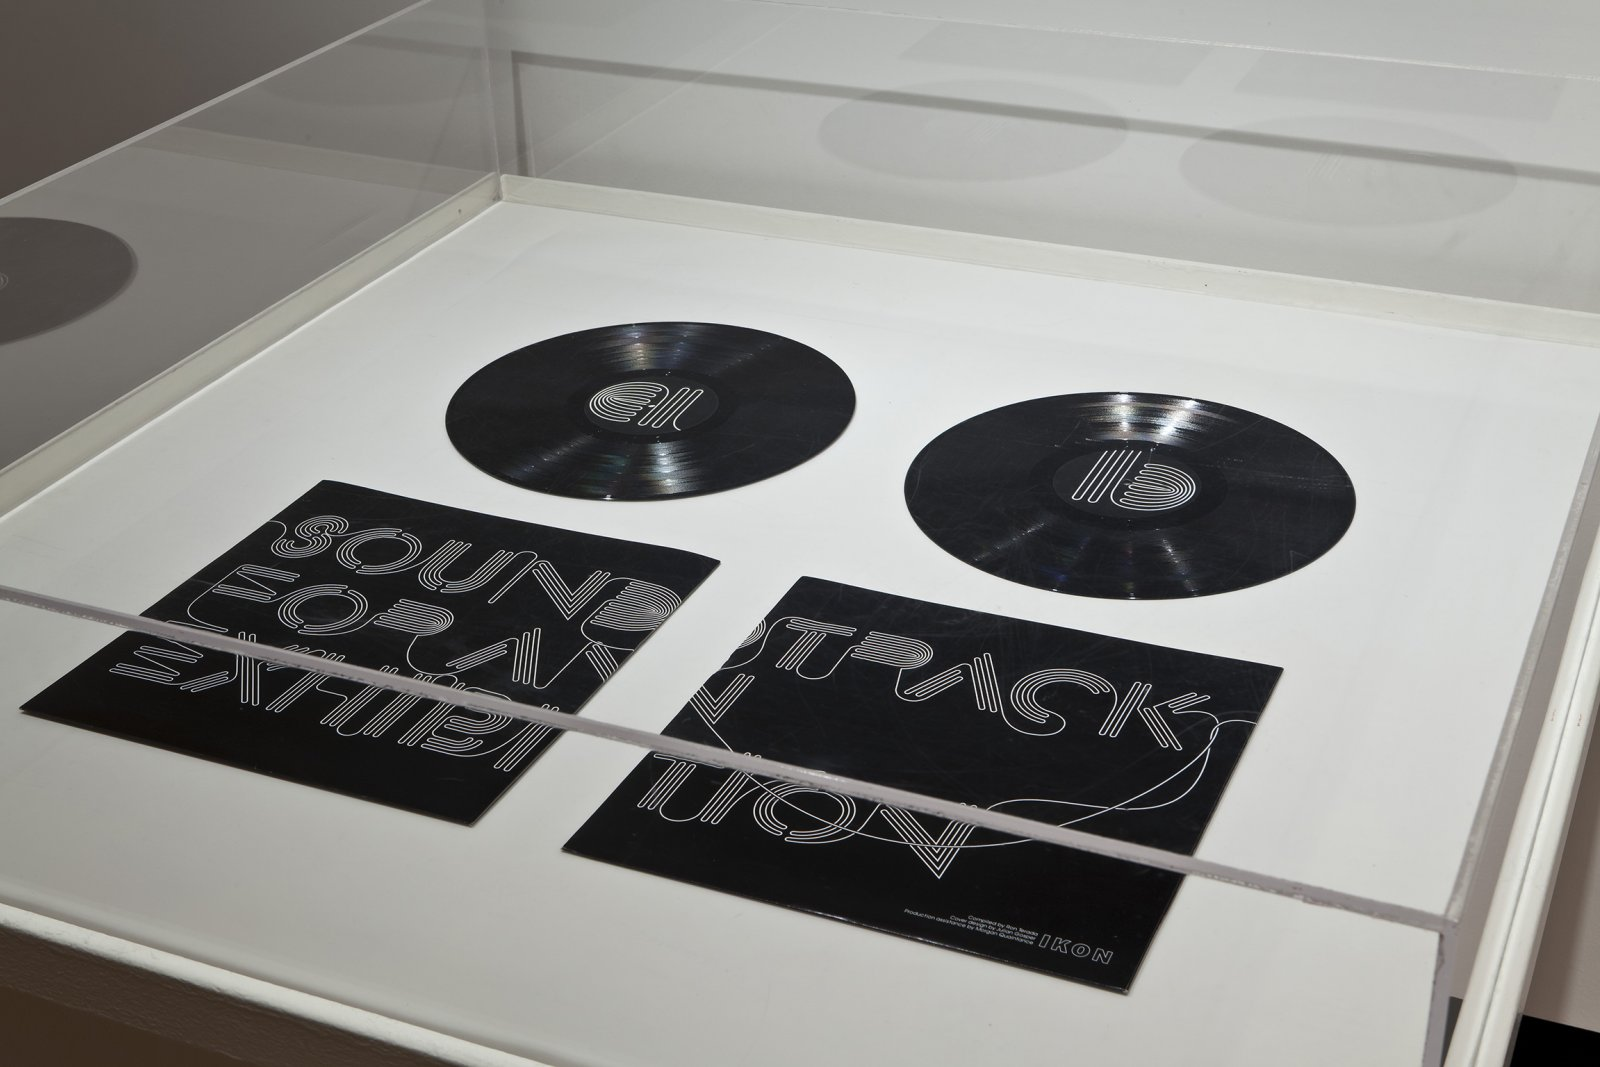 Ron Terada, Soundtrack for an Exhibition, 2010, vinyl record, 12 x 10 in. (30 x 25 cm). Installation view, Who I Think I Am, Justina M. Barnicke Gallery, 2011